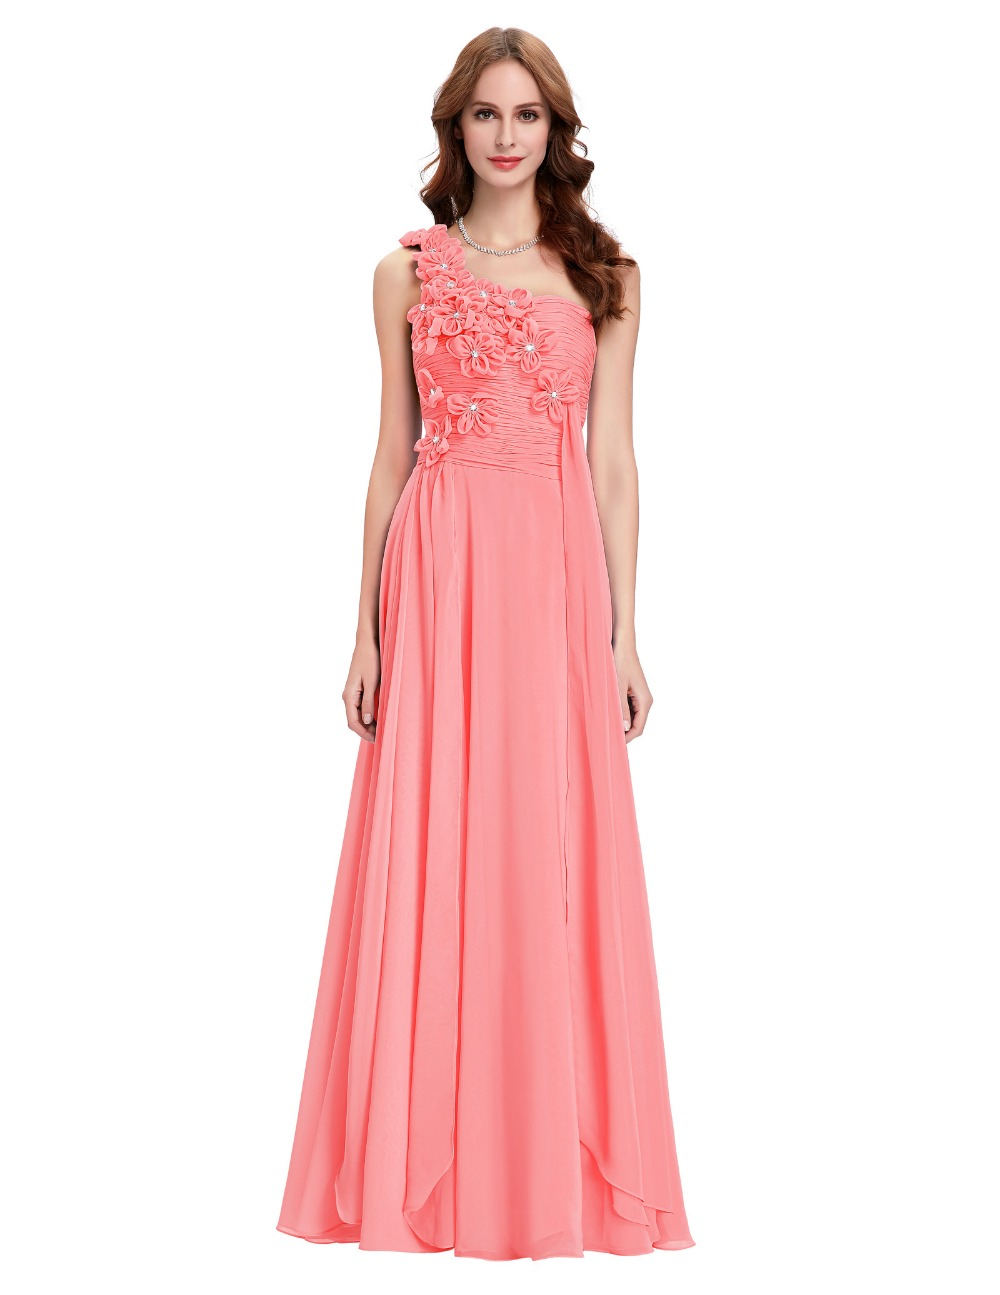 Aliexpress.com : Buy Coral Bridesmaid Dresses Long One ...